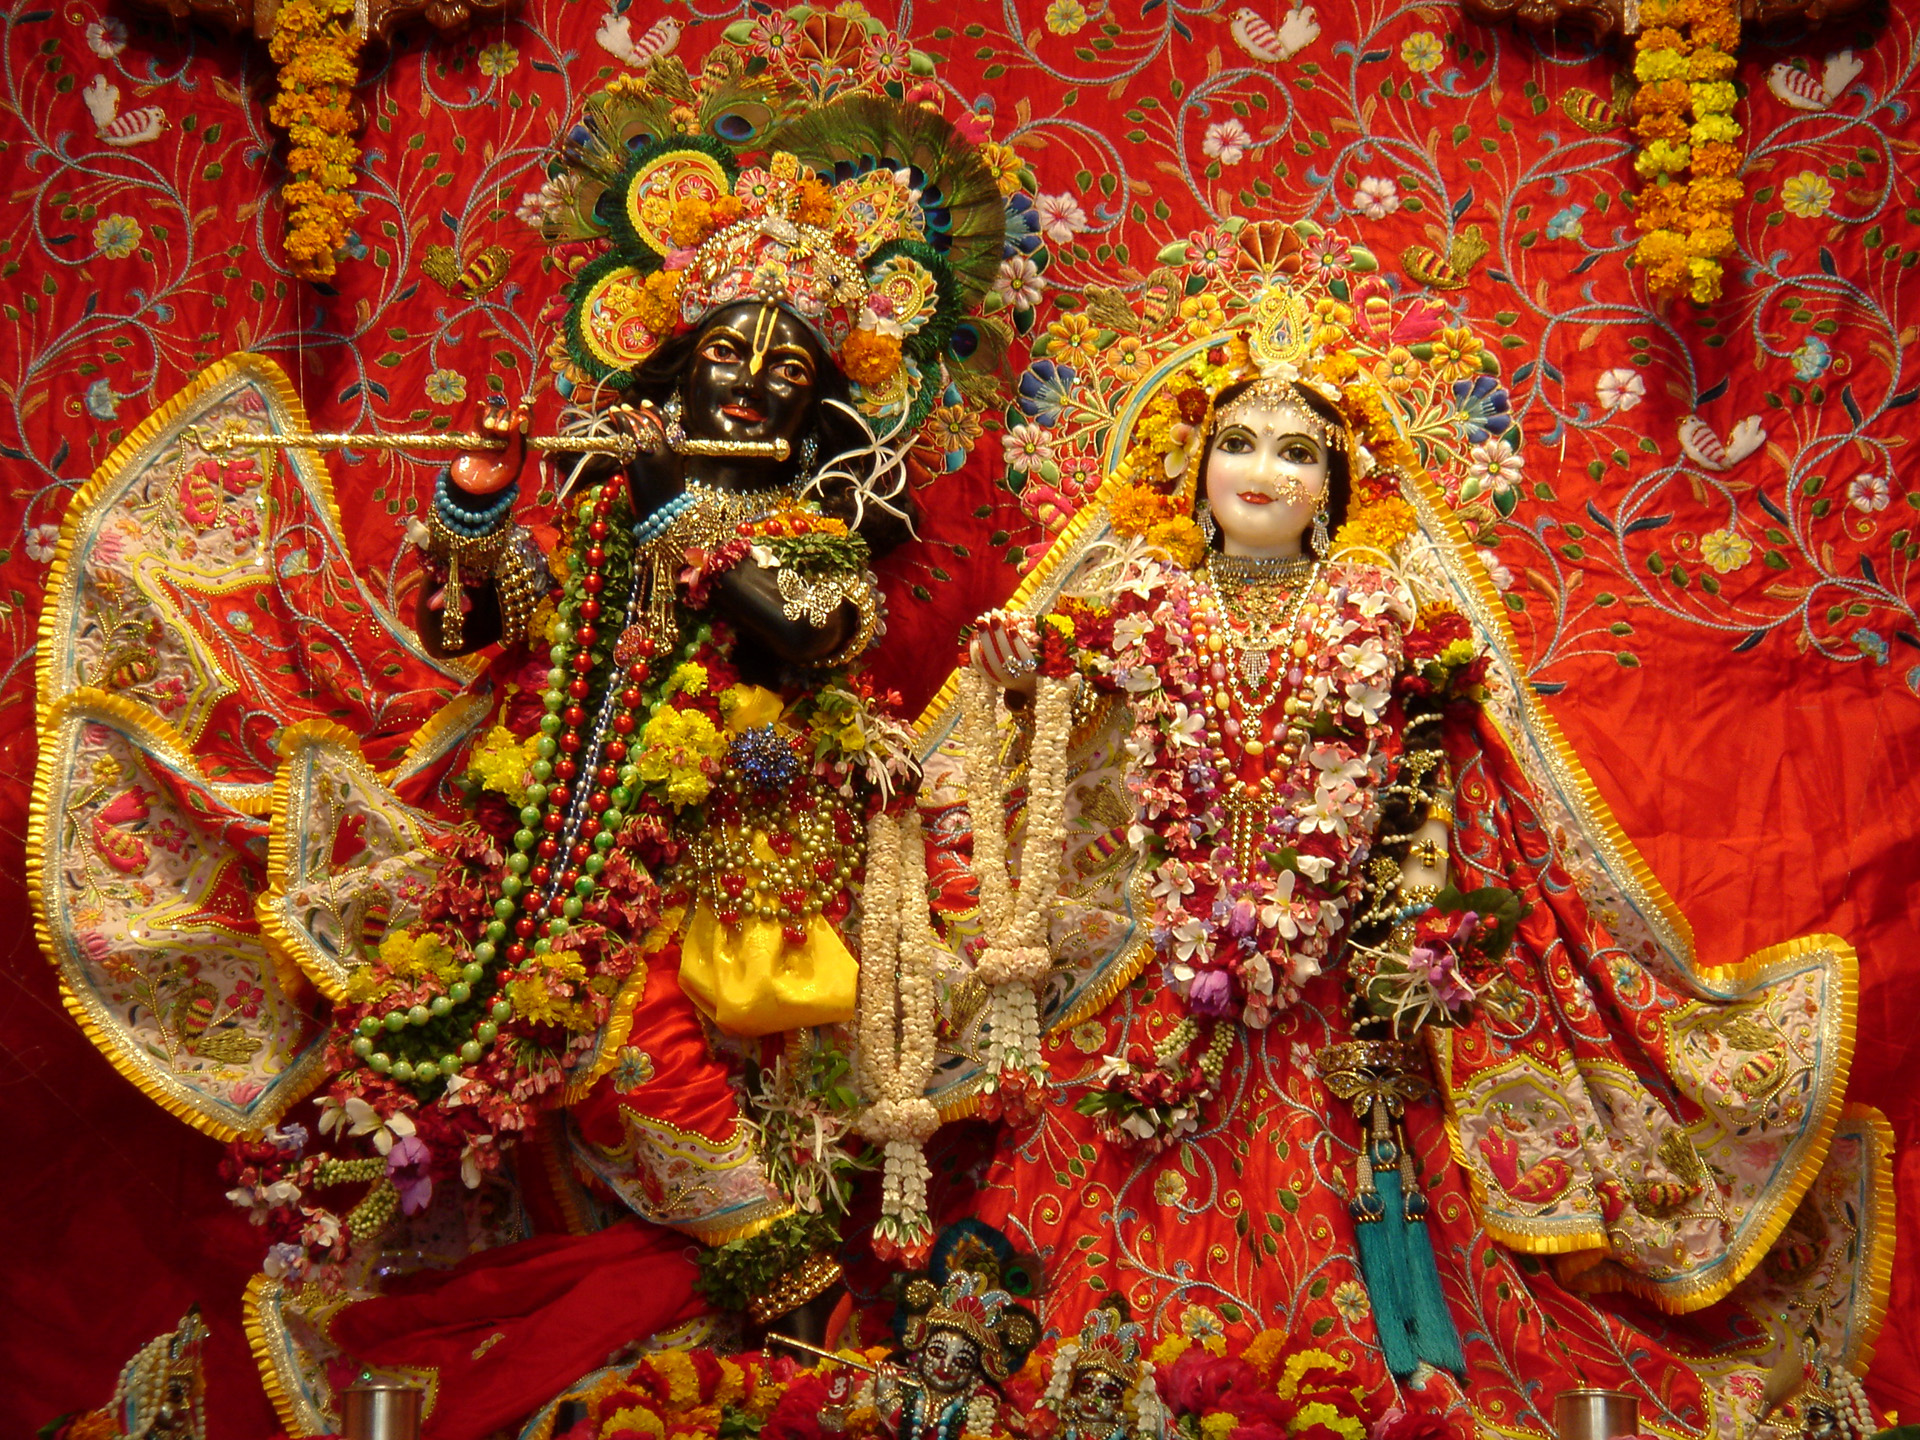 an analysis of the krishna worship and its place in indian religion 25042018  krishna has influenced the indian thought, life, and culture in myriad ways he has influenced not only its religion and philosophy,.